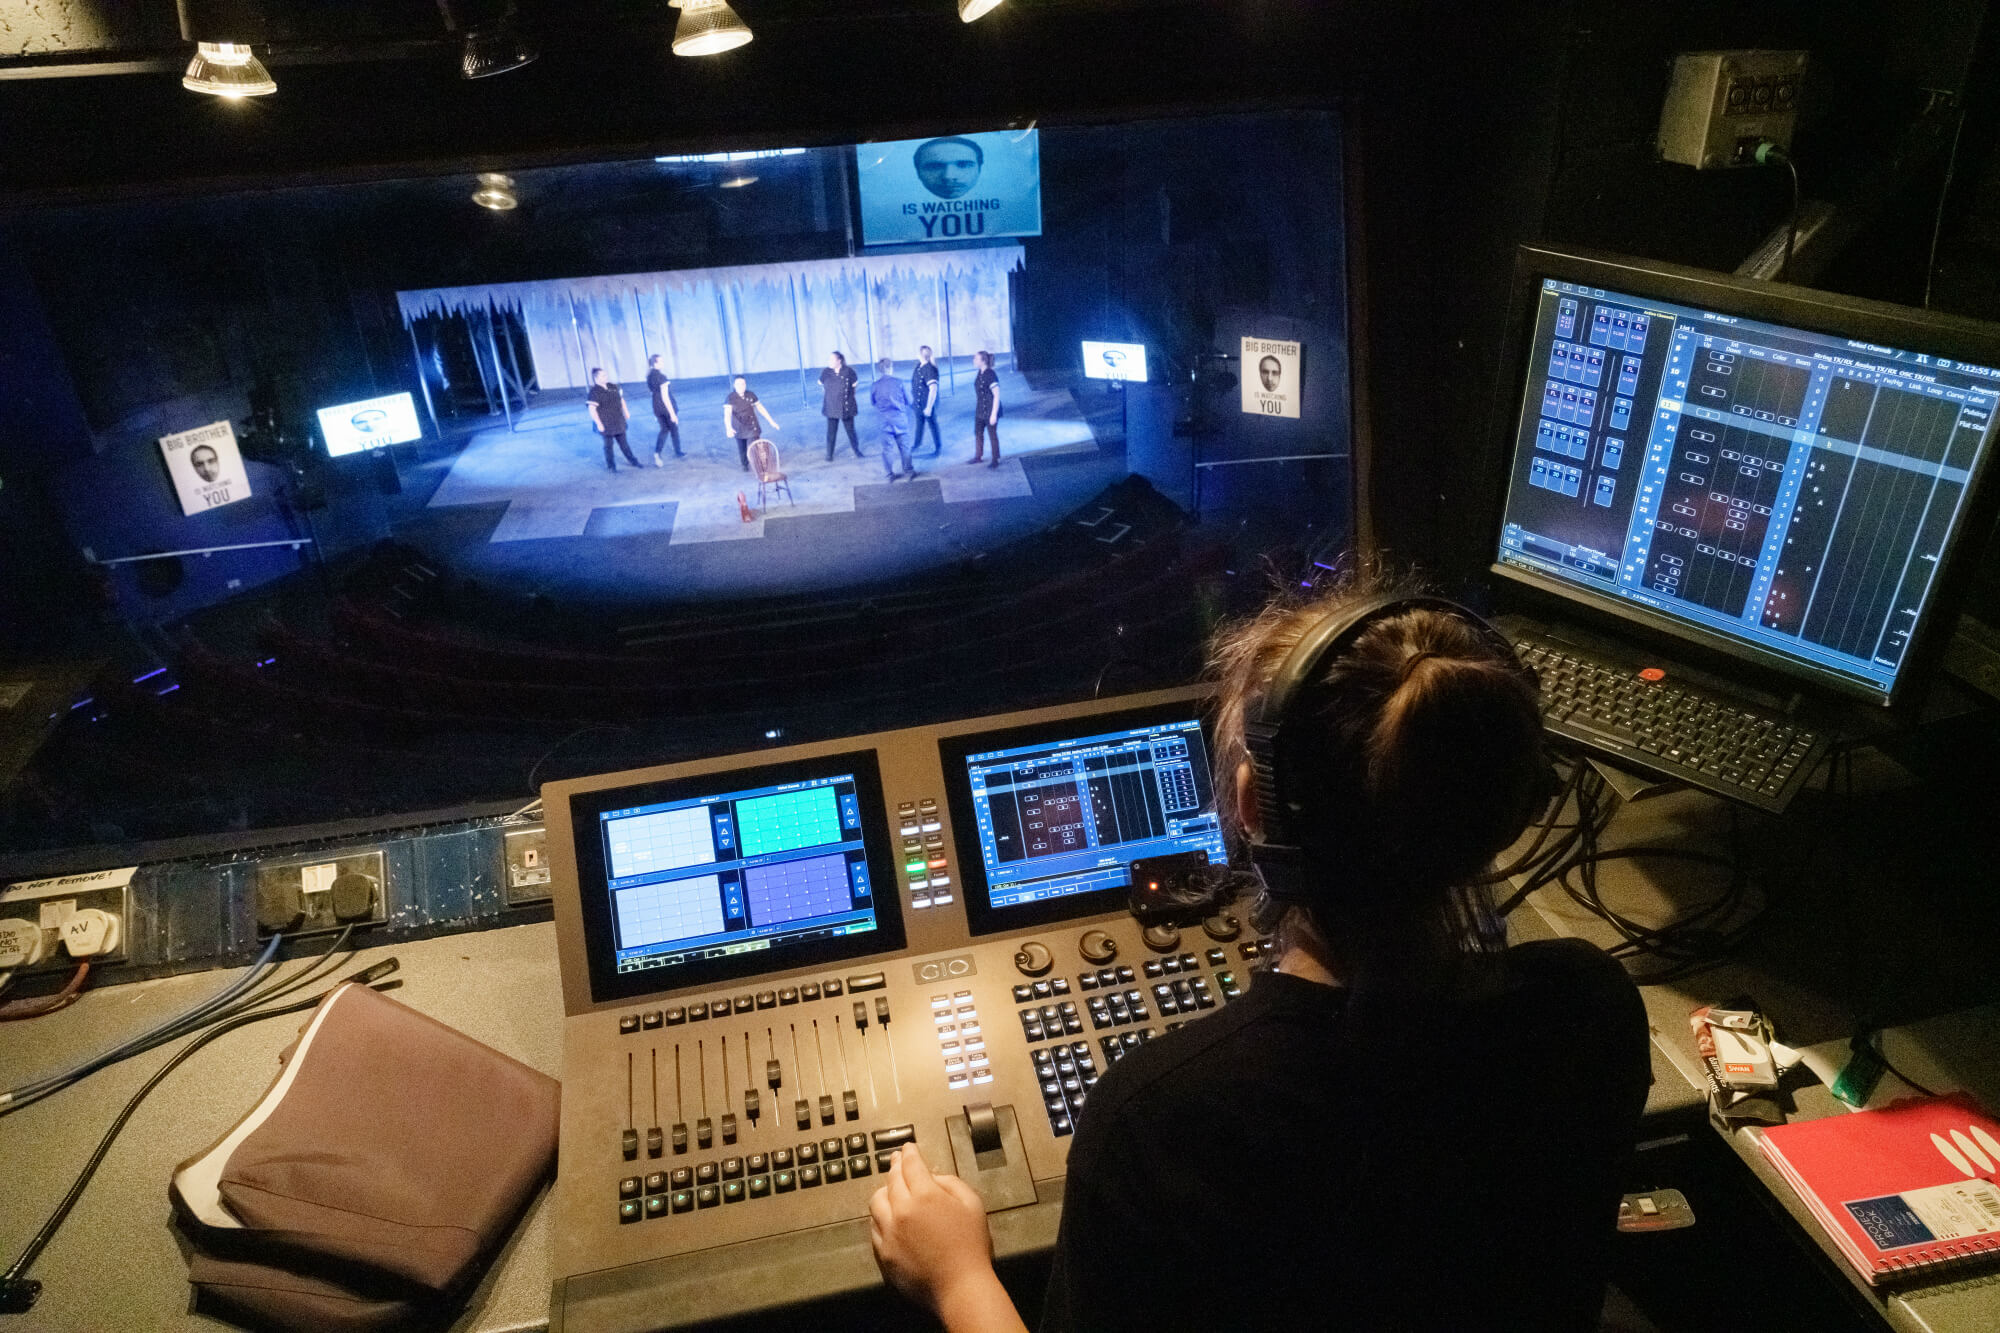 A view over the shoulder of a student at the sound and light controls of a theatre stage